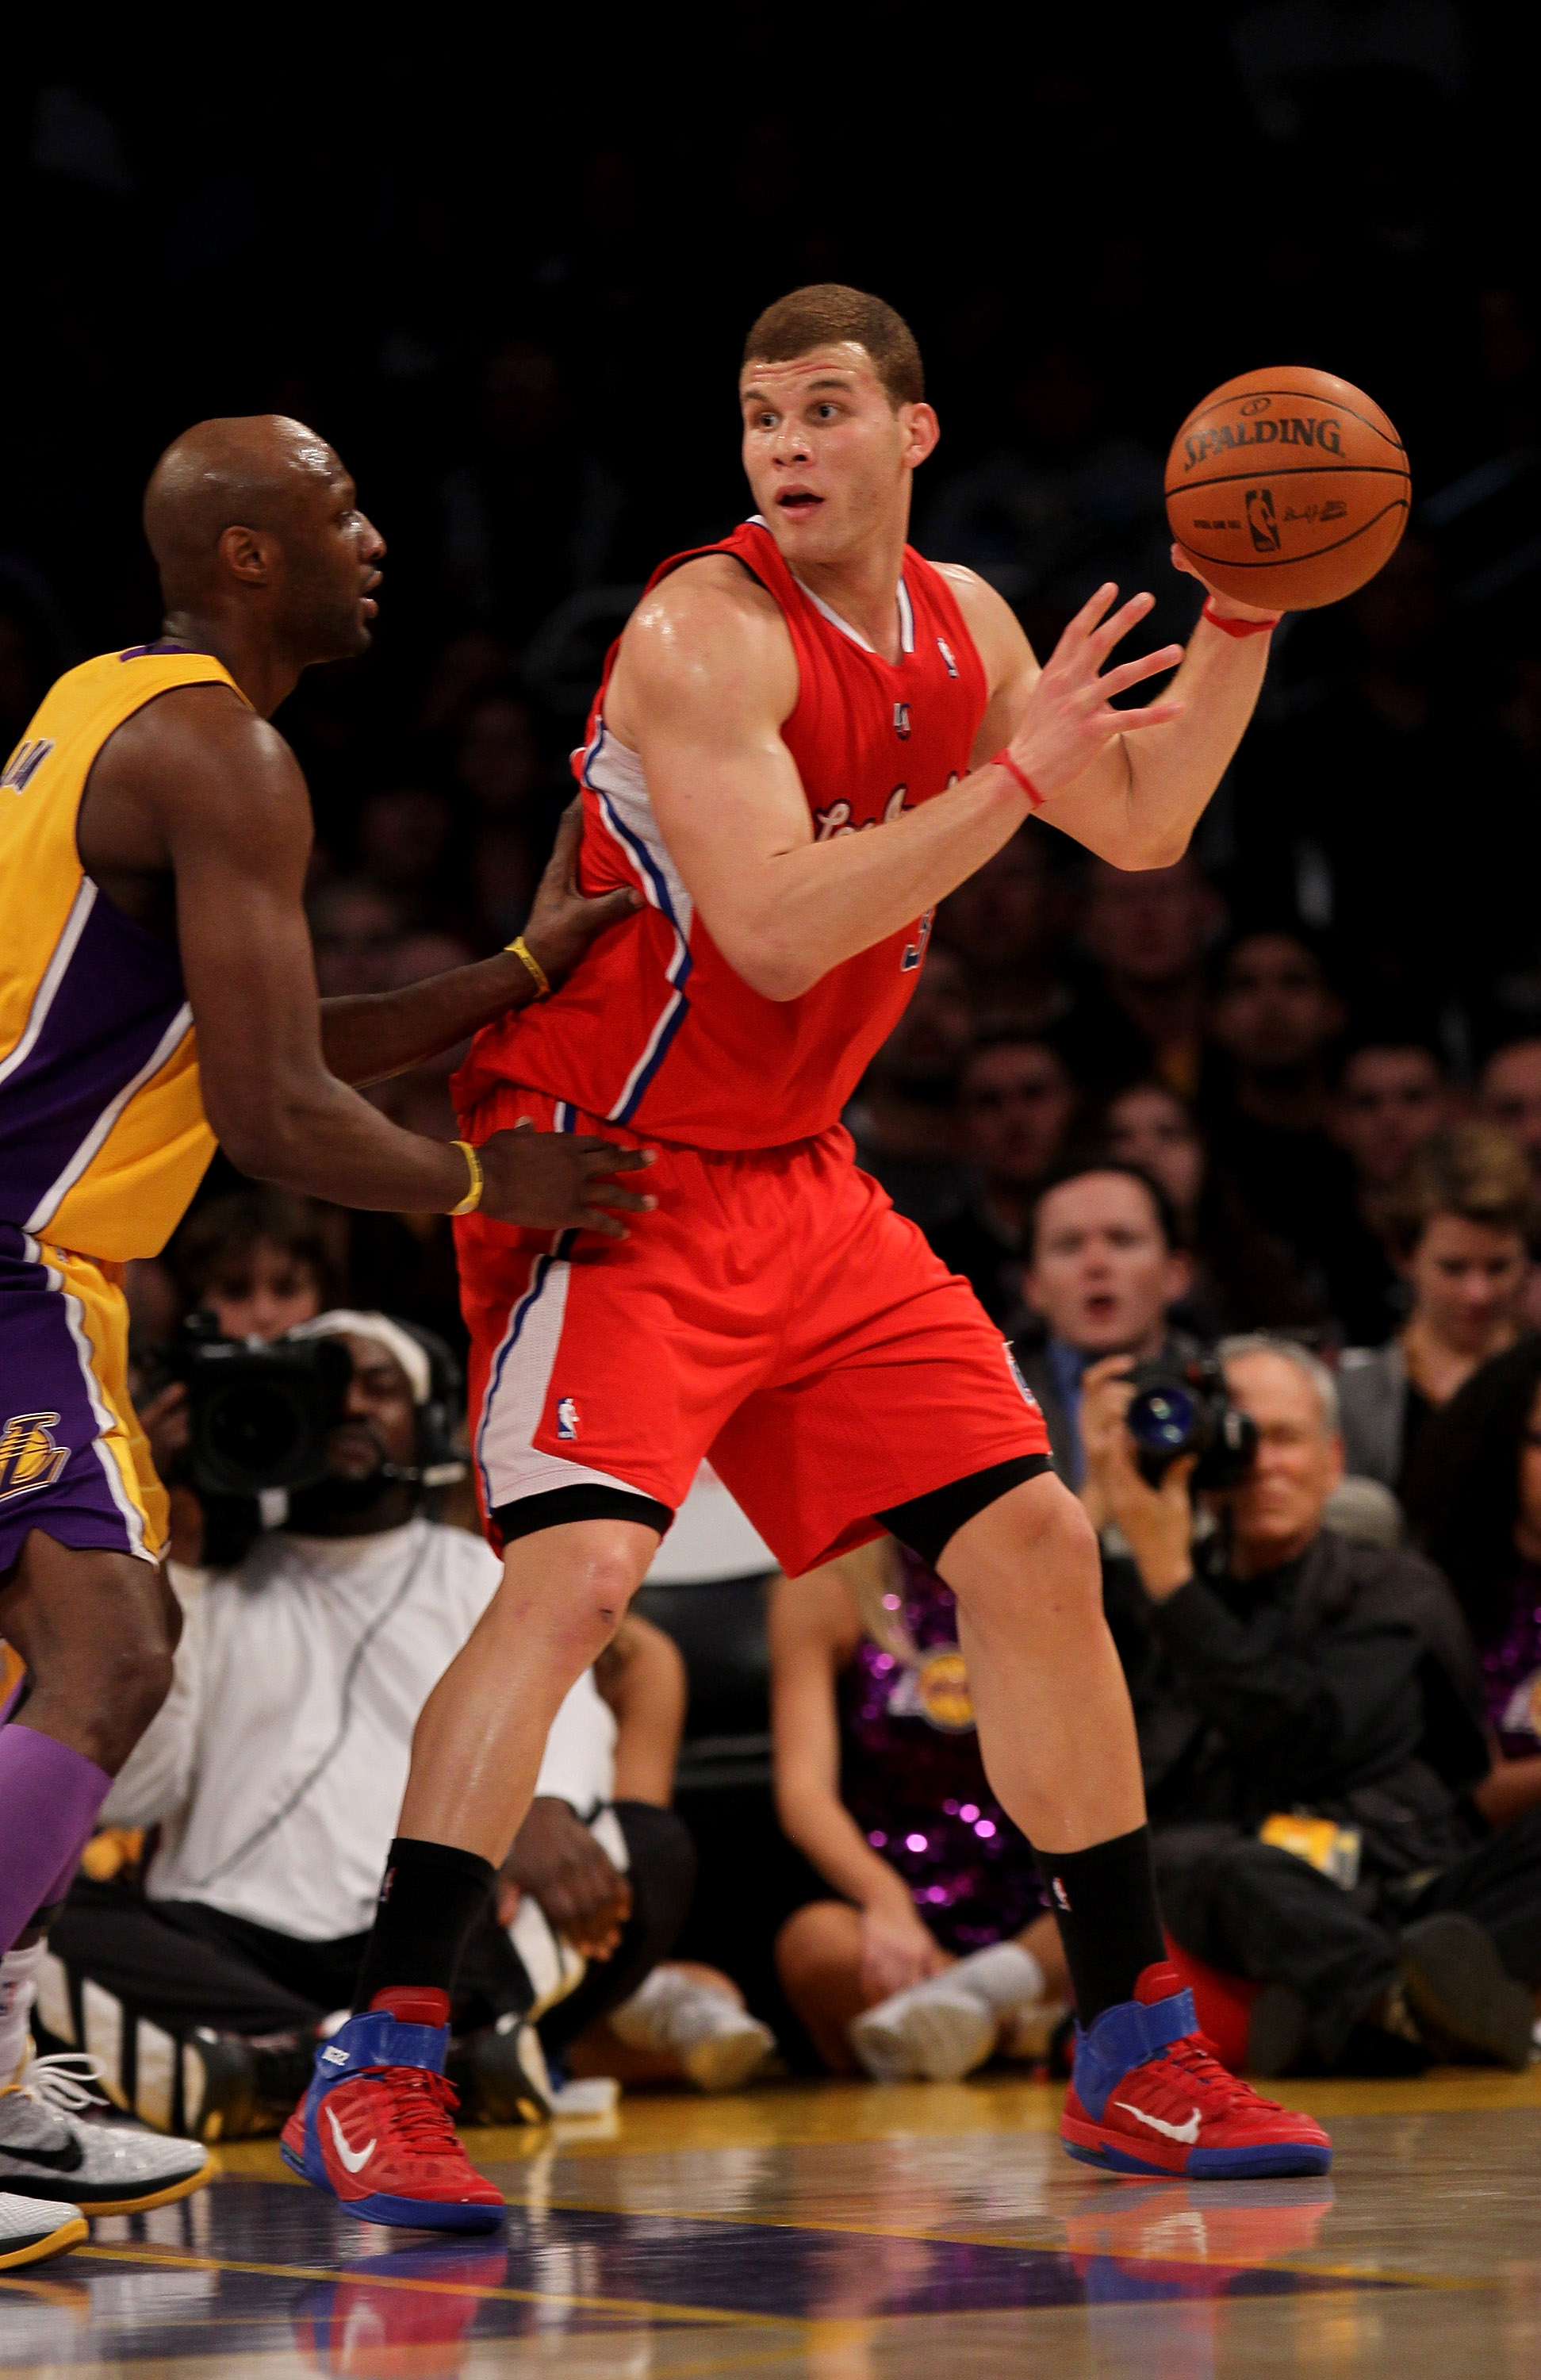 LOS ANGELES, CA - FEBRUARY 25:  Blake Griffin #32 of the Los Angeles Clippers controls the ball against Lamar Odom #7 of the Los Angeles Lakers at Staples Center on February 25, 2011 in Los Angeles, California. The Lakers won 108-95.  NOTE TO USER: User e